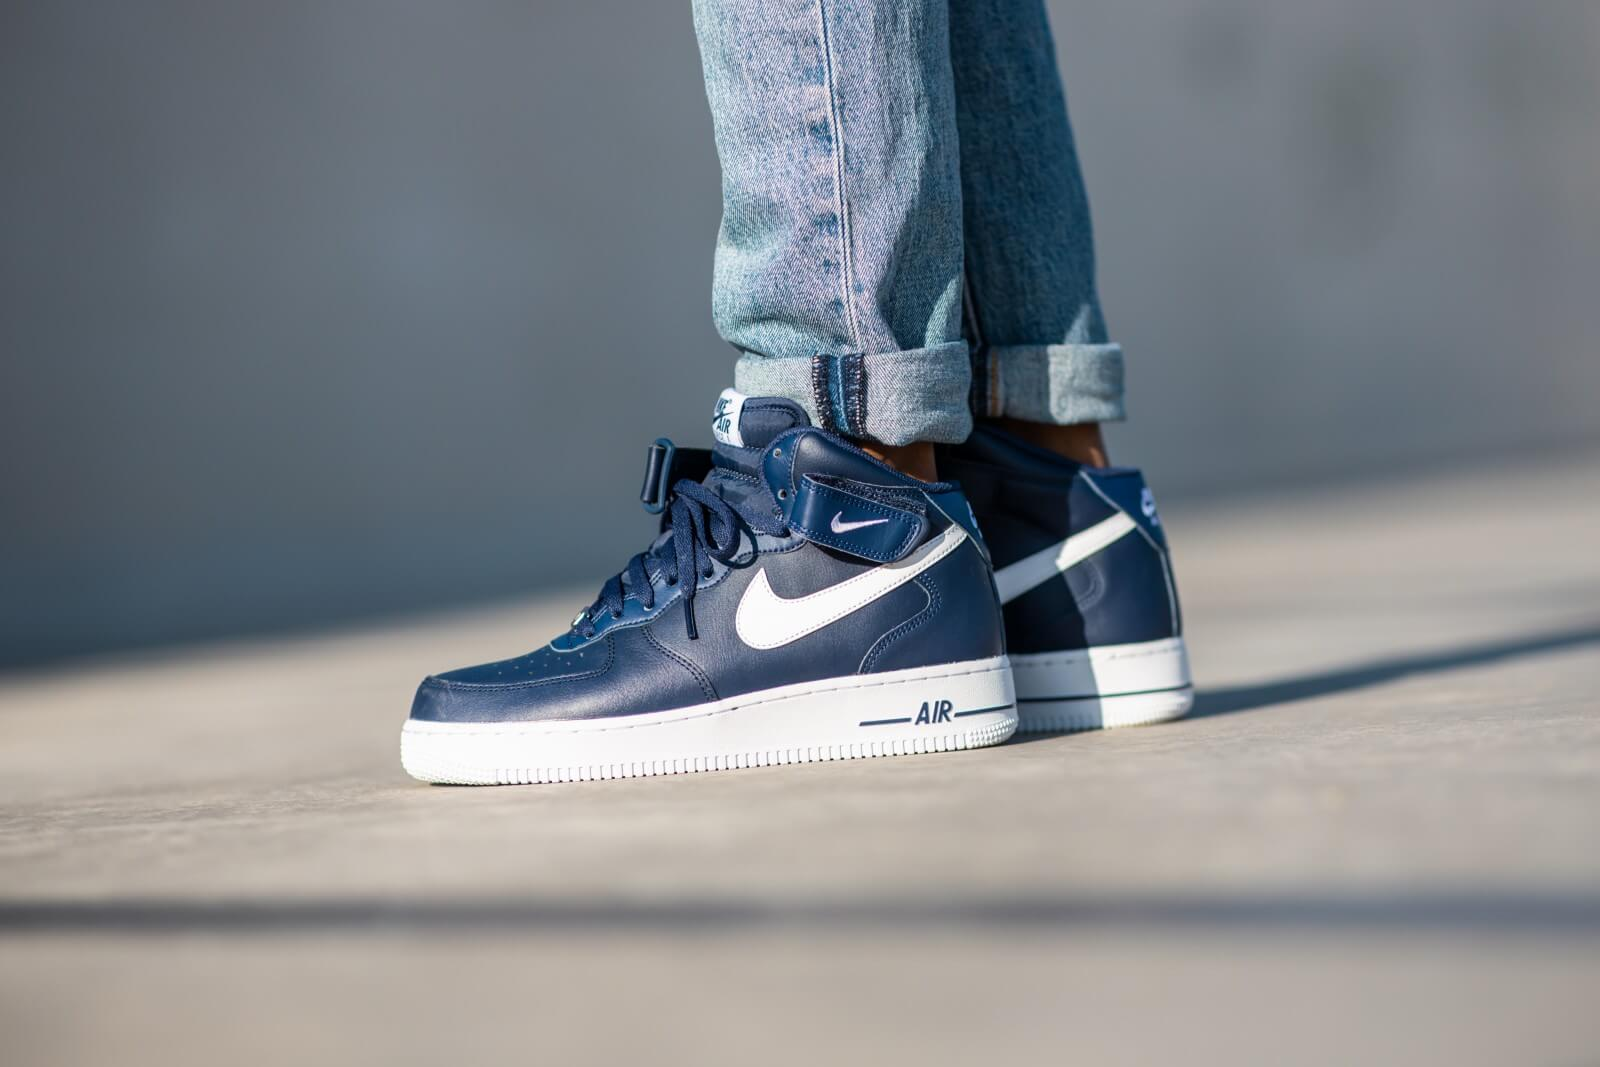 Nike Air Force 1 Mid '07 AN20 Midnight Navy/White